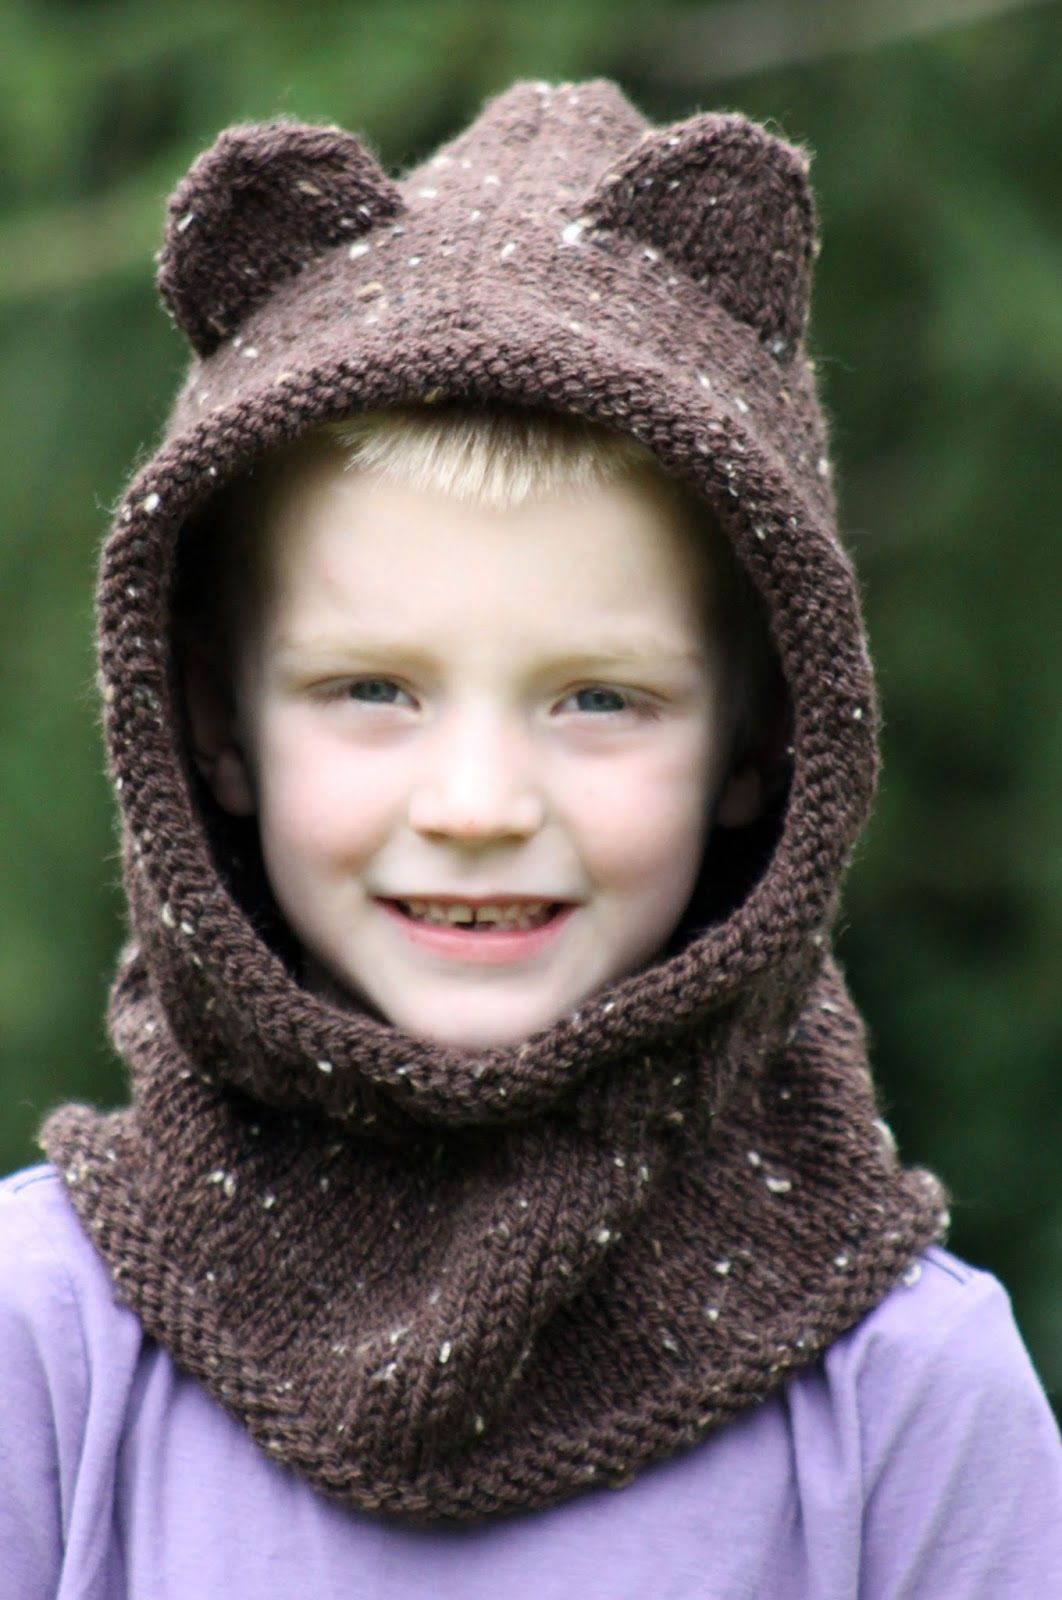 Baby Bear Hooded Cowl | Hooded cowl, Knit patterns and Knitted baby